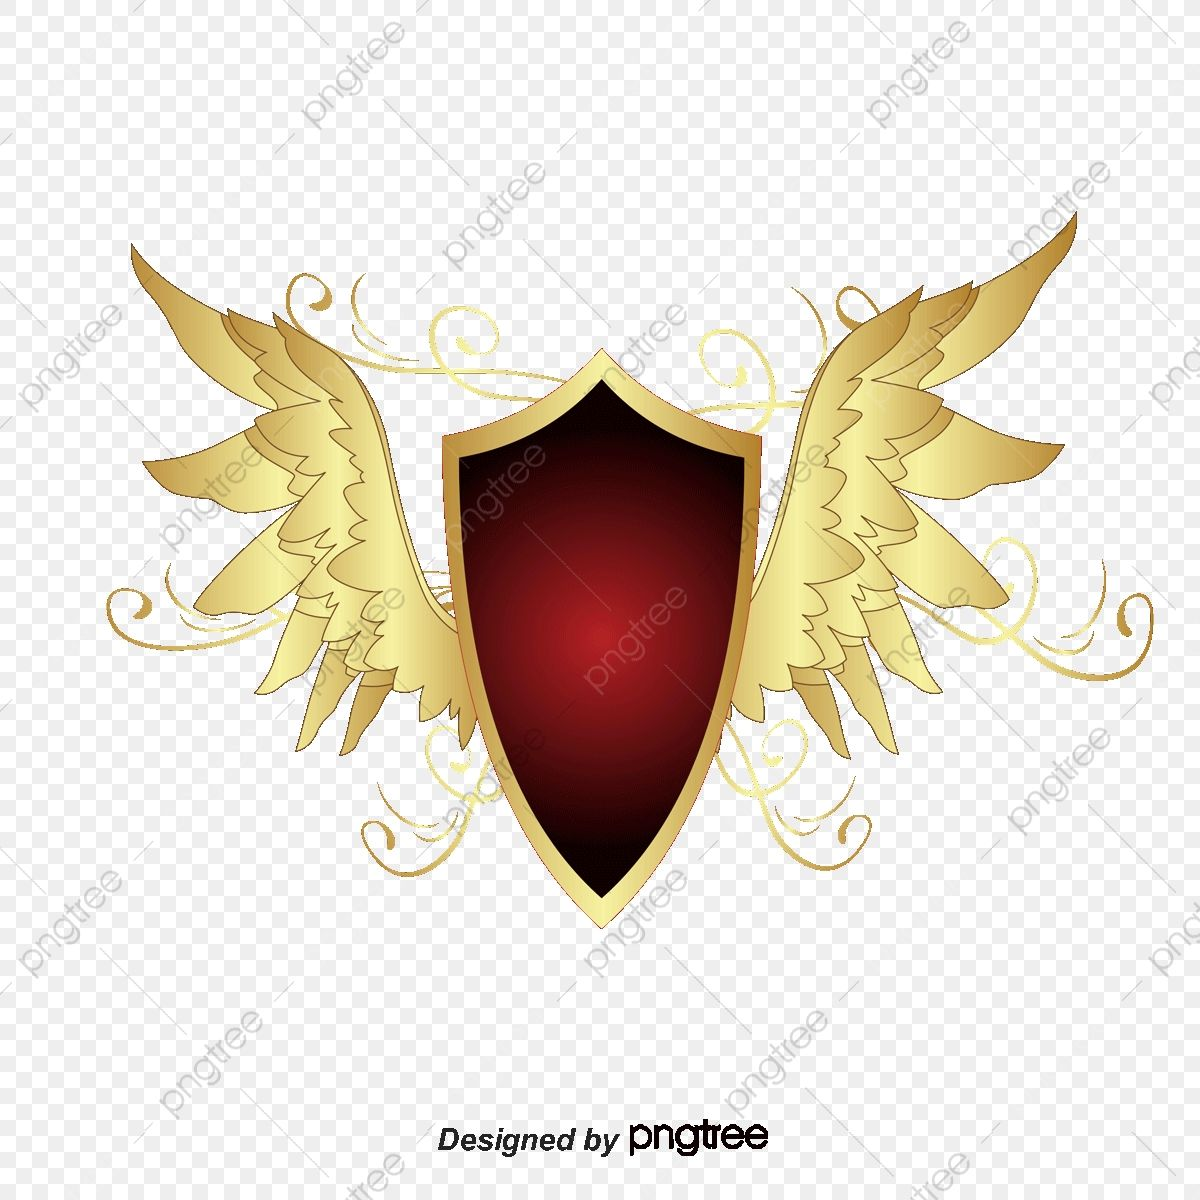 Wings Shield Wings Vector Shield Vector Shield Png Transparent Clipart Image And Psd File For Free Download Shield Vector Wings Cartoon Styles